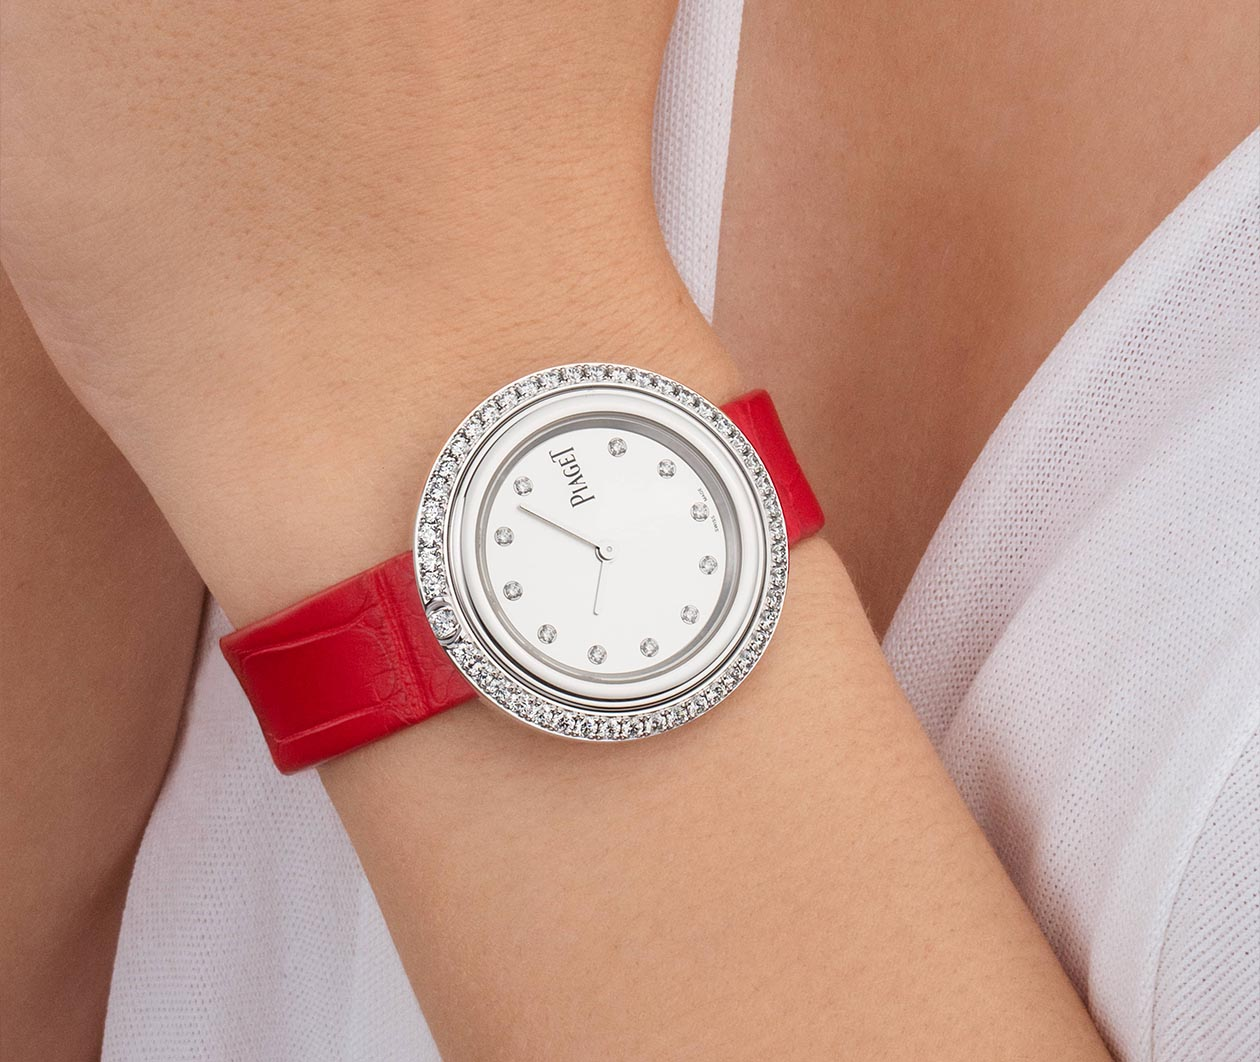 Piaget Possession watch G0A44294 Carousel 2 FINAL